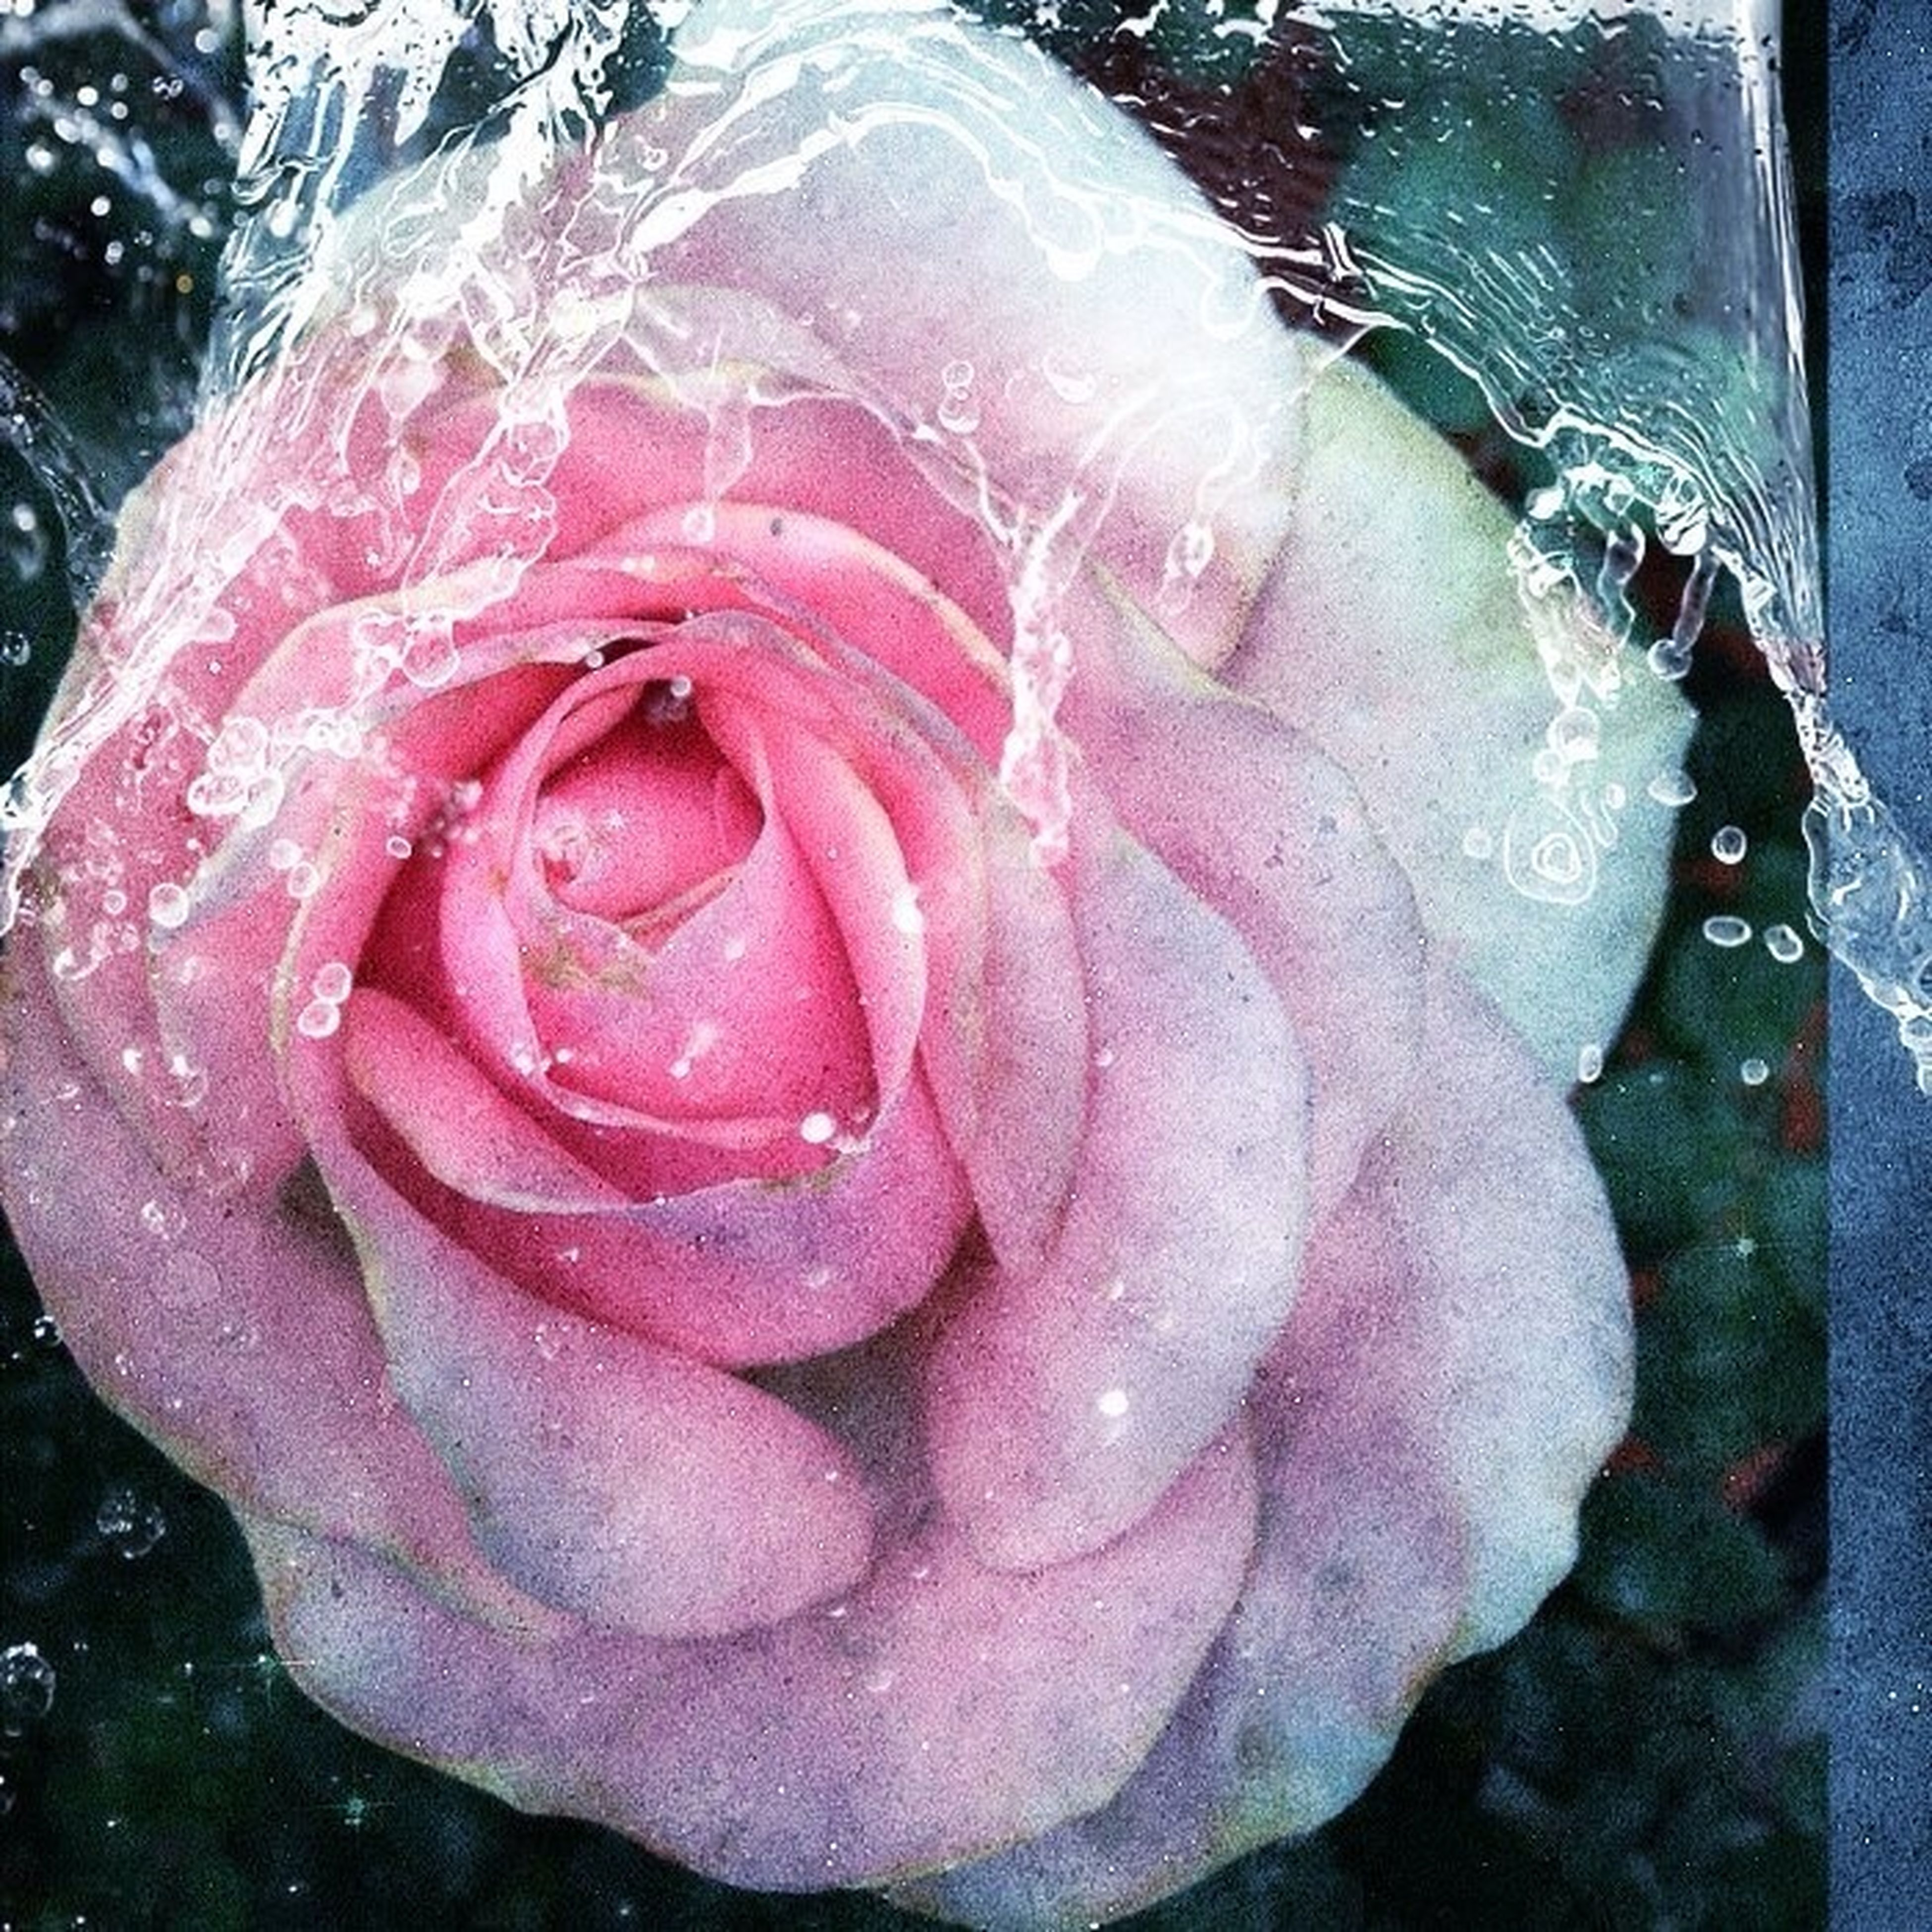 water, petal, freshness, flower, drop, flower head, fragility, wet, close-up, rose - flower, single flower, pink color, beauty in nature, nature, rain, ice, blooming, rose, purity, outdoors